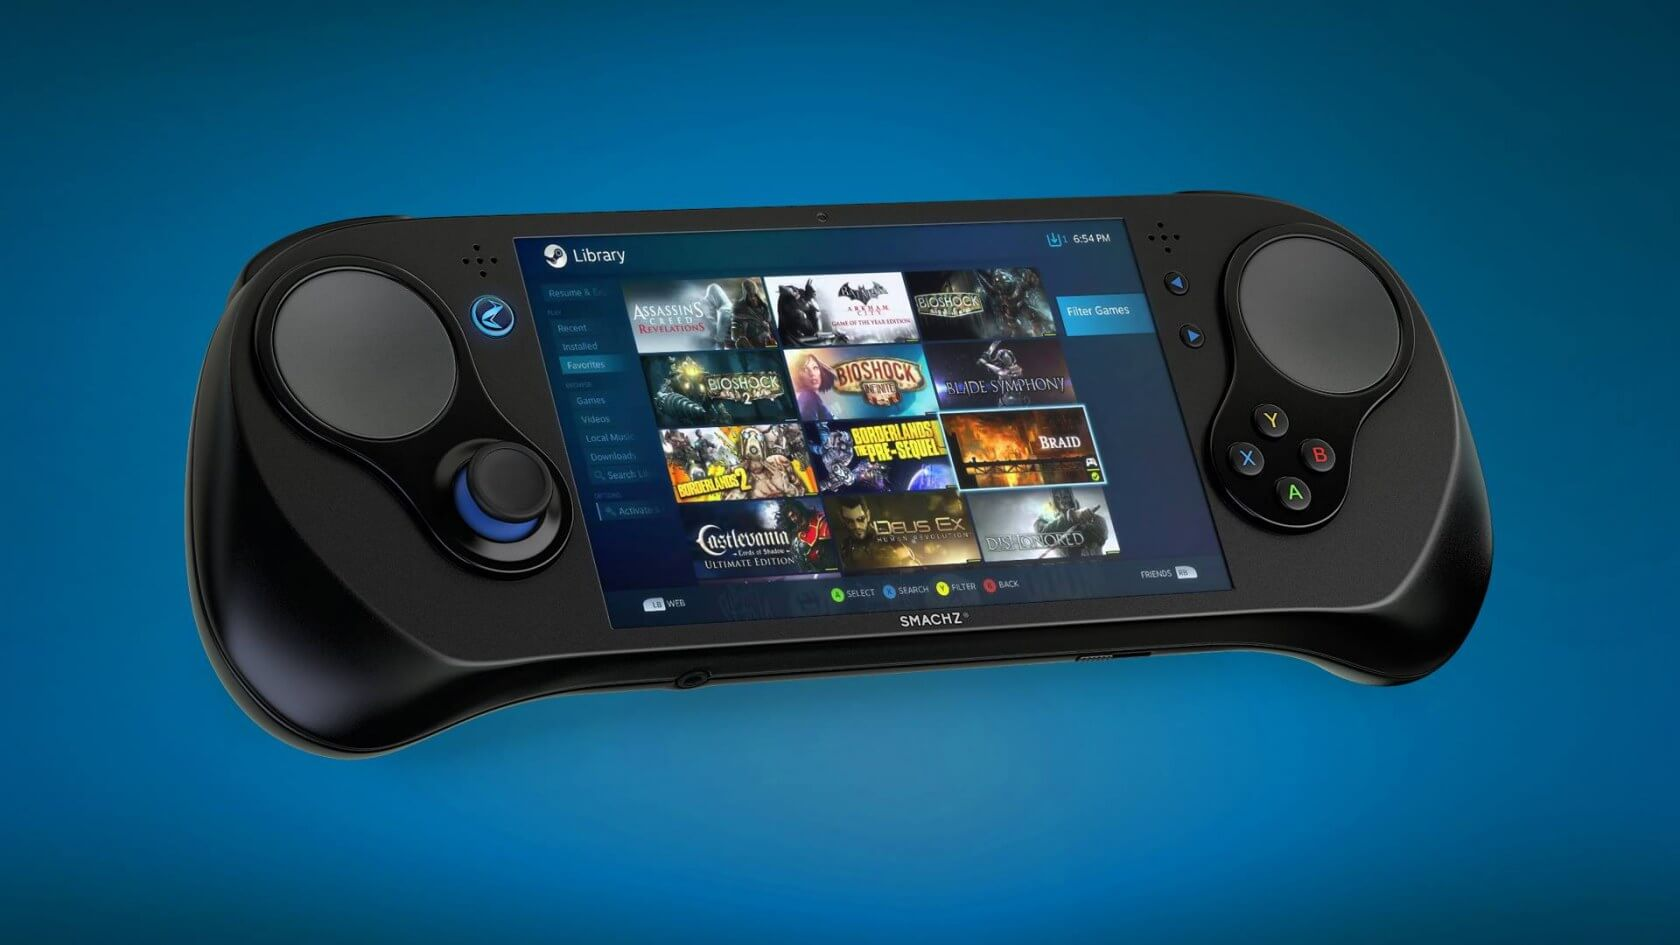 AMD will host SMACH Z handheld gaming console at TGS 2018 booth